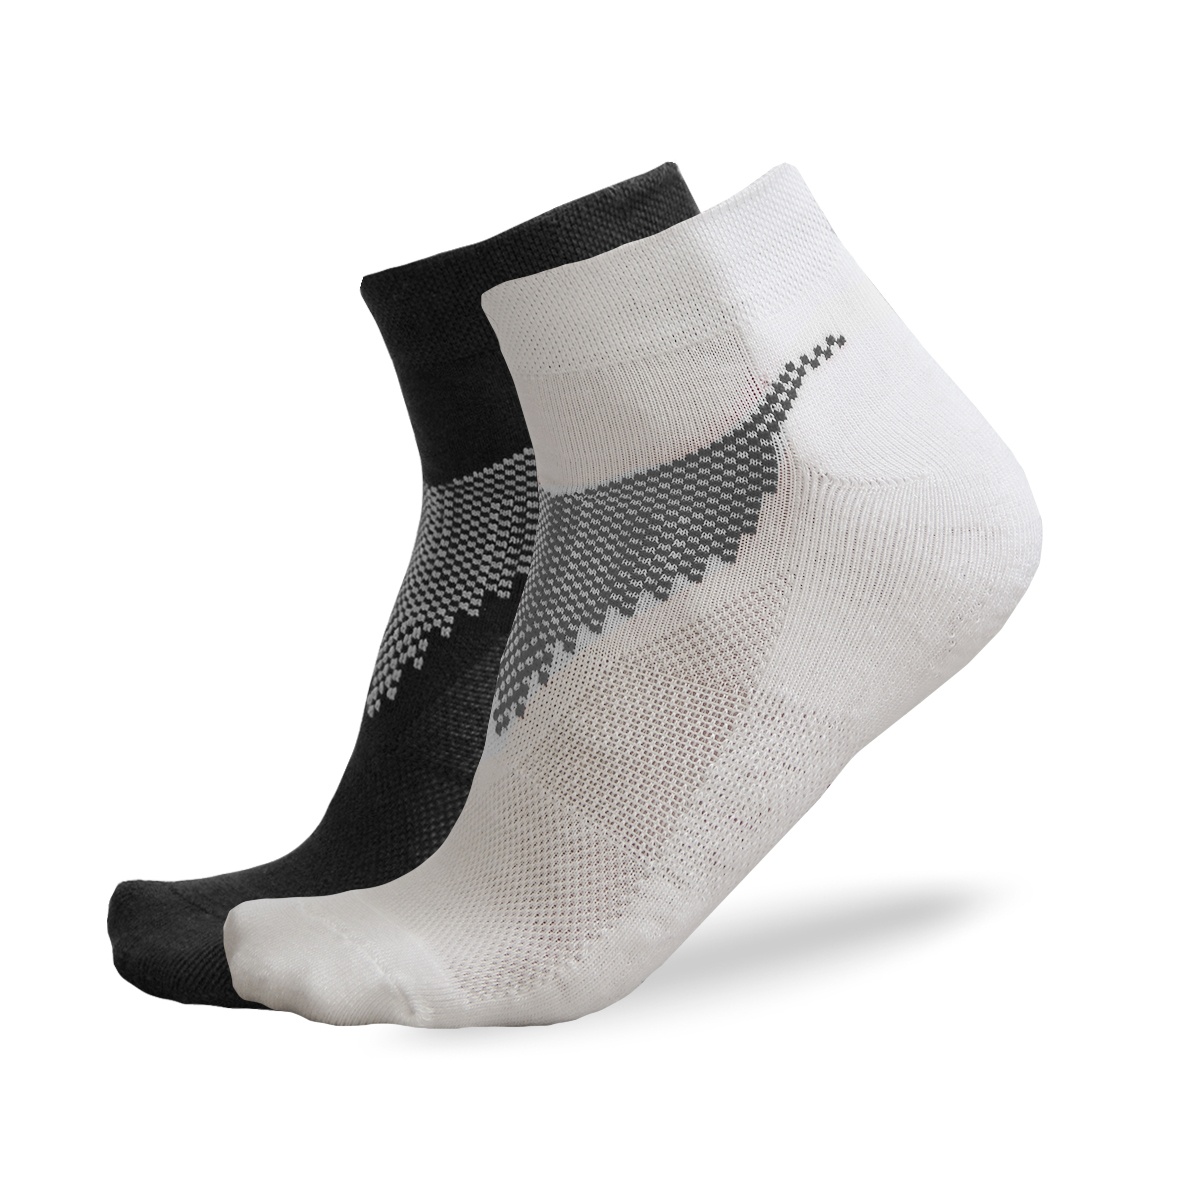 FREEZ ANCLE SOCKS 2-pack black+white 43-46